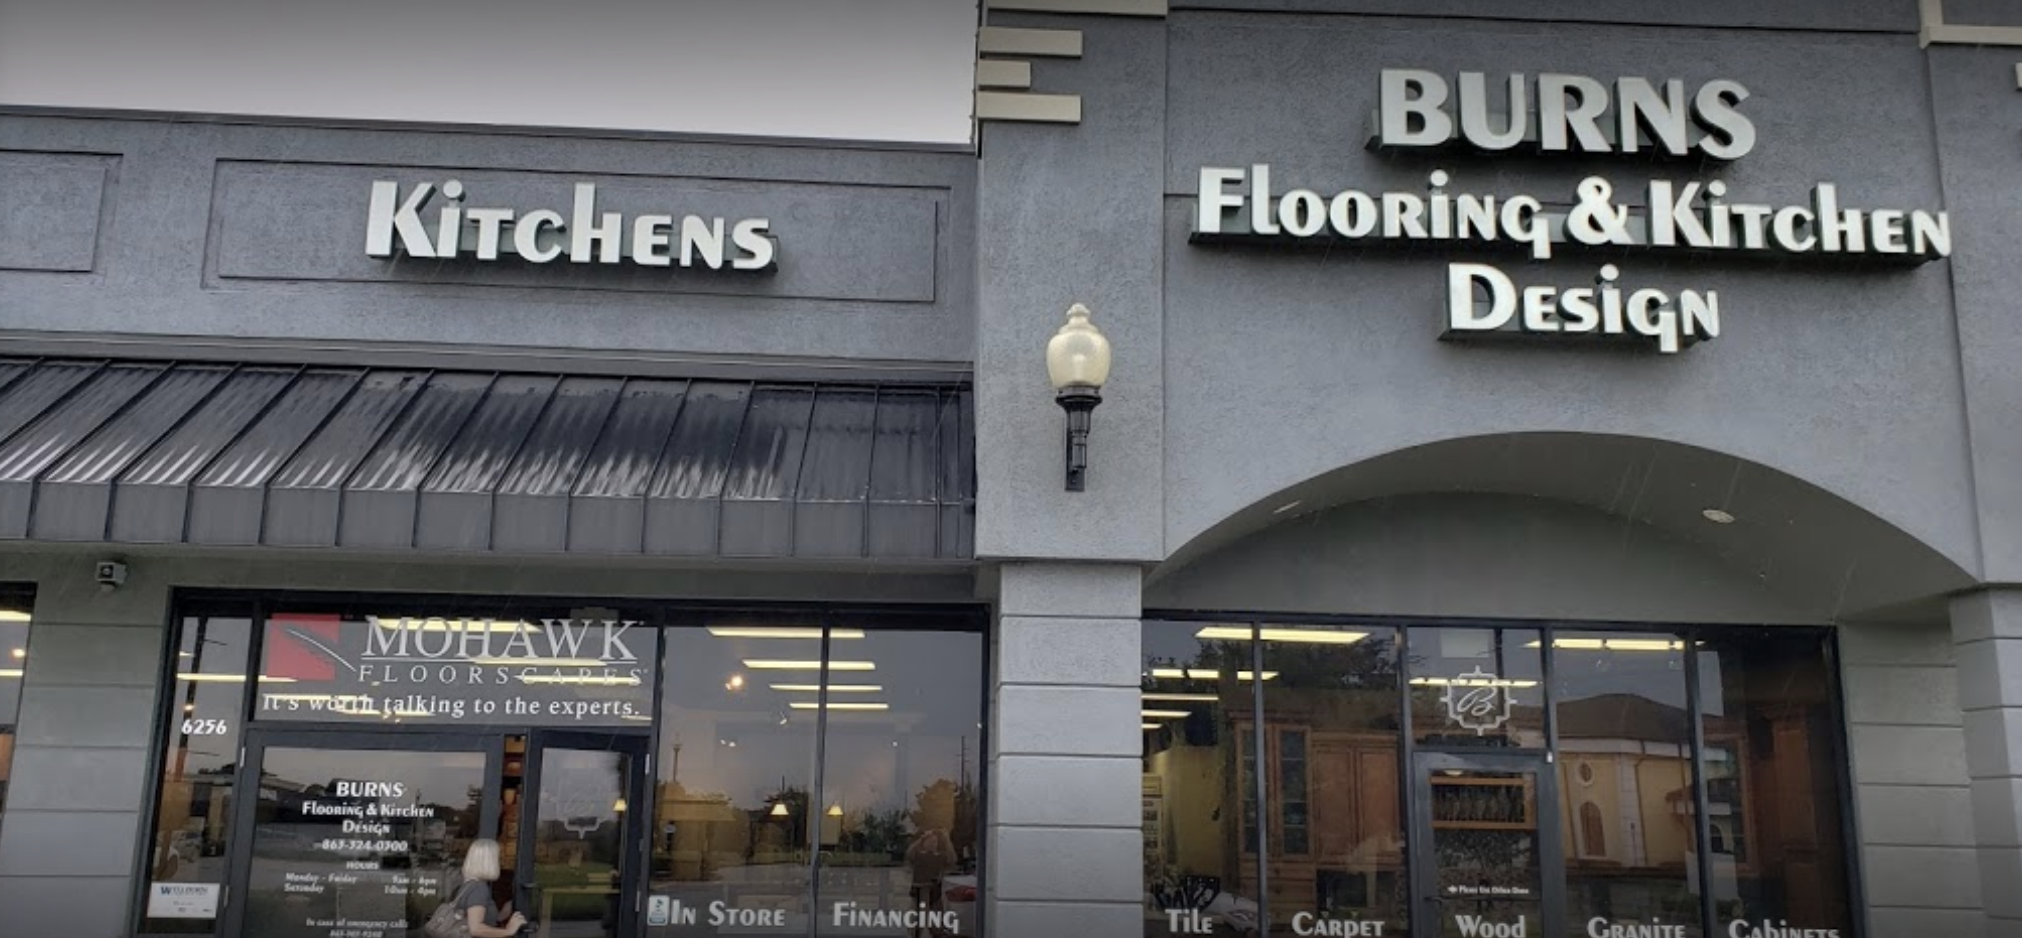 Burn's Flooring & Kitchen Design - 6256 Cypress Gardens Blvd, Winter Haven, FL 33884